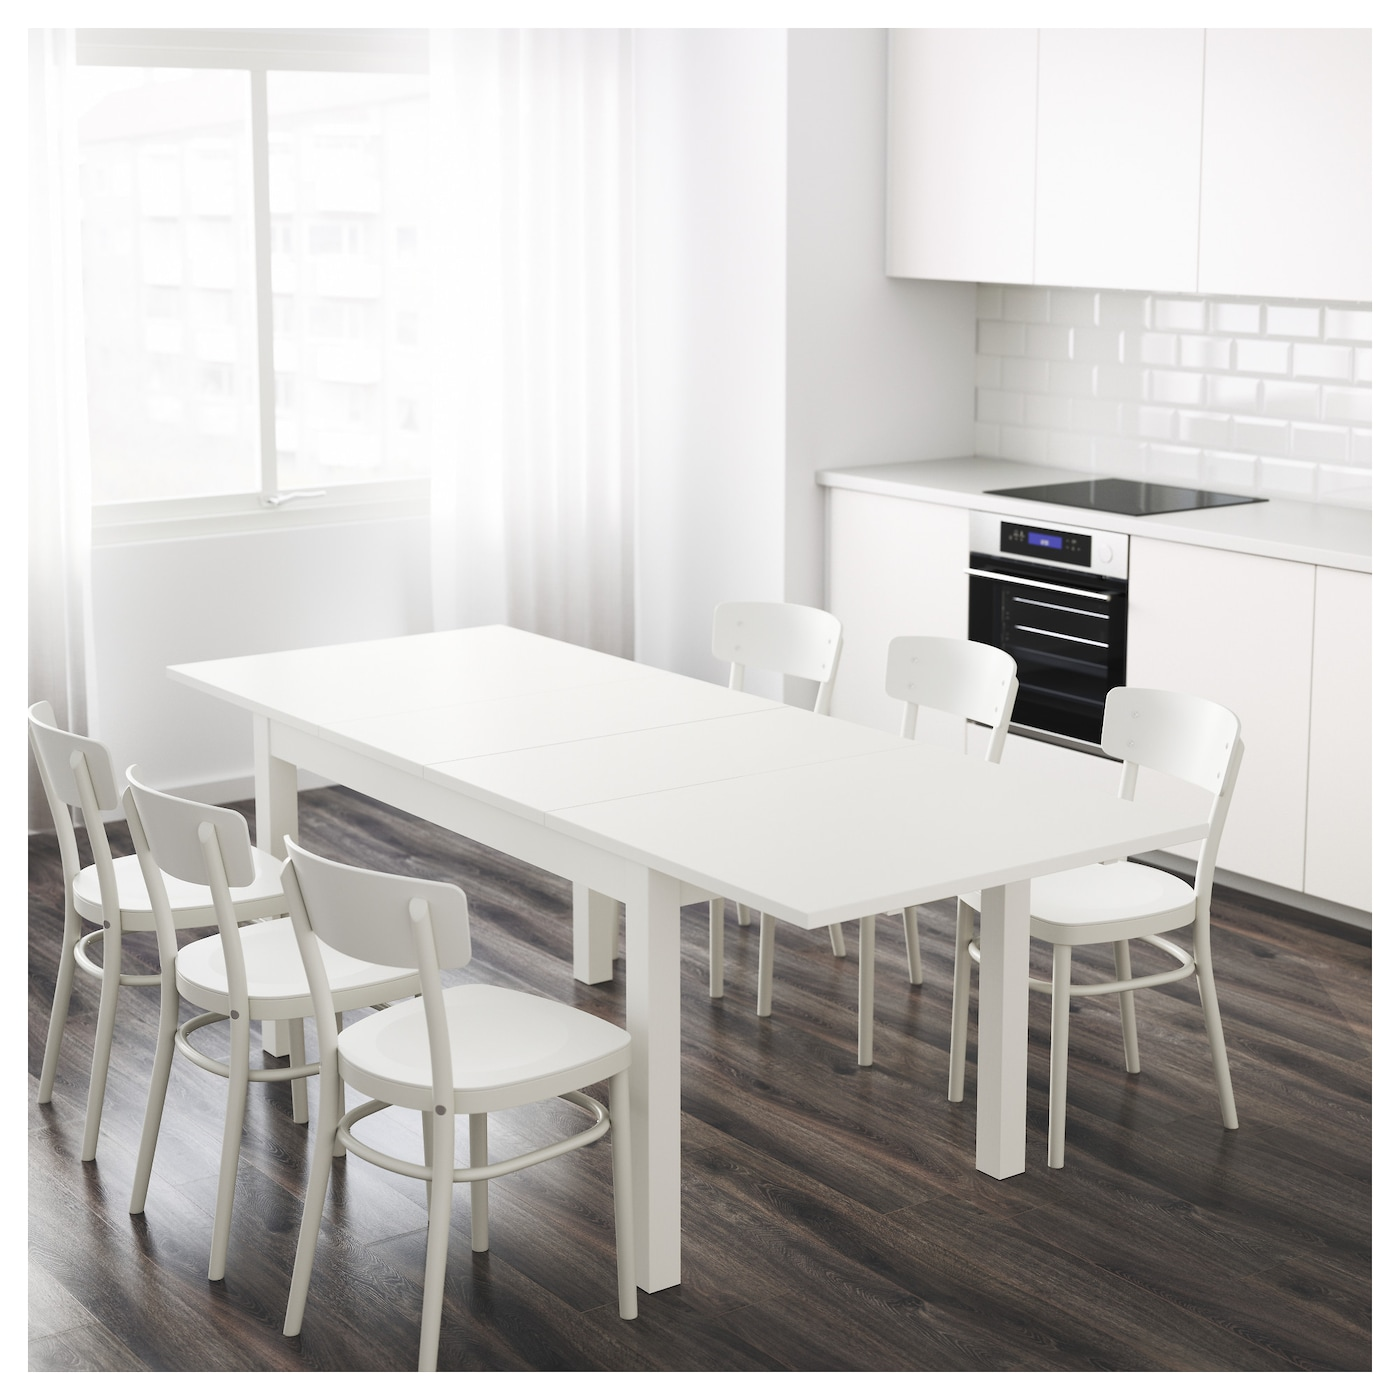 bjursta extendable table white 140 180 220x84 cm ikea. Black Bedroom Furniture Sets. Home Design Ideas